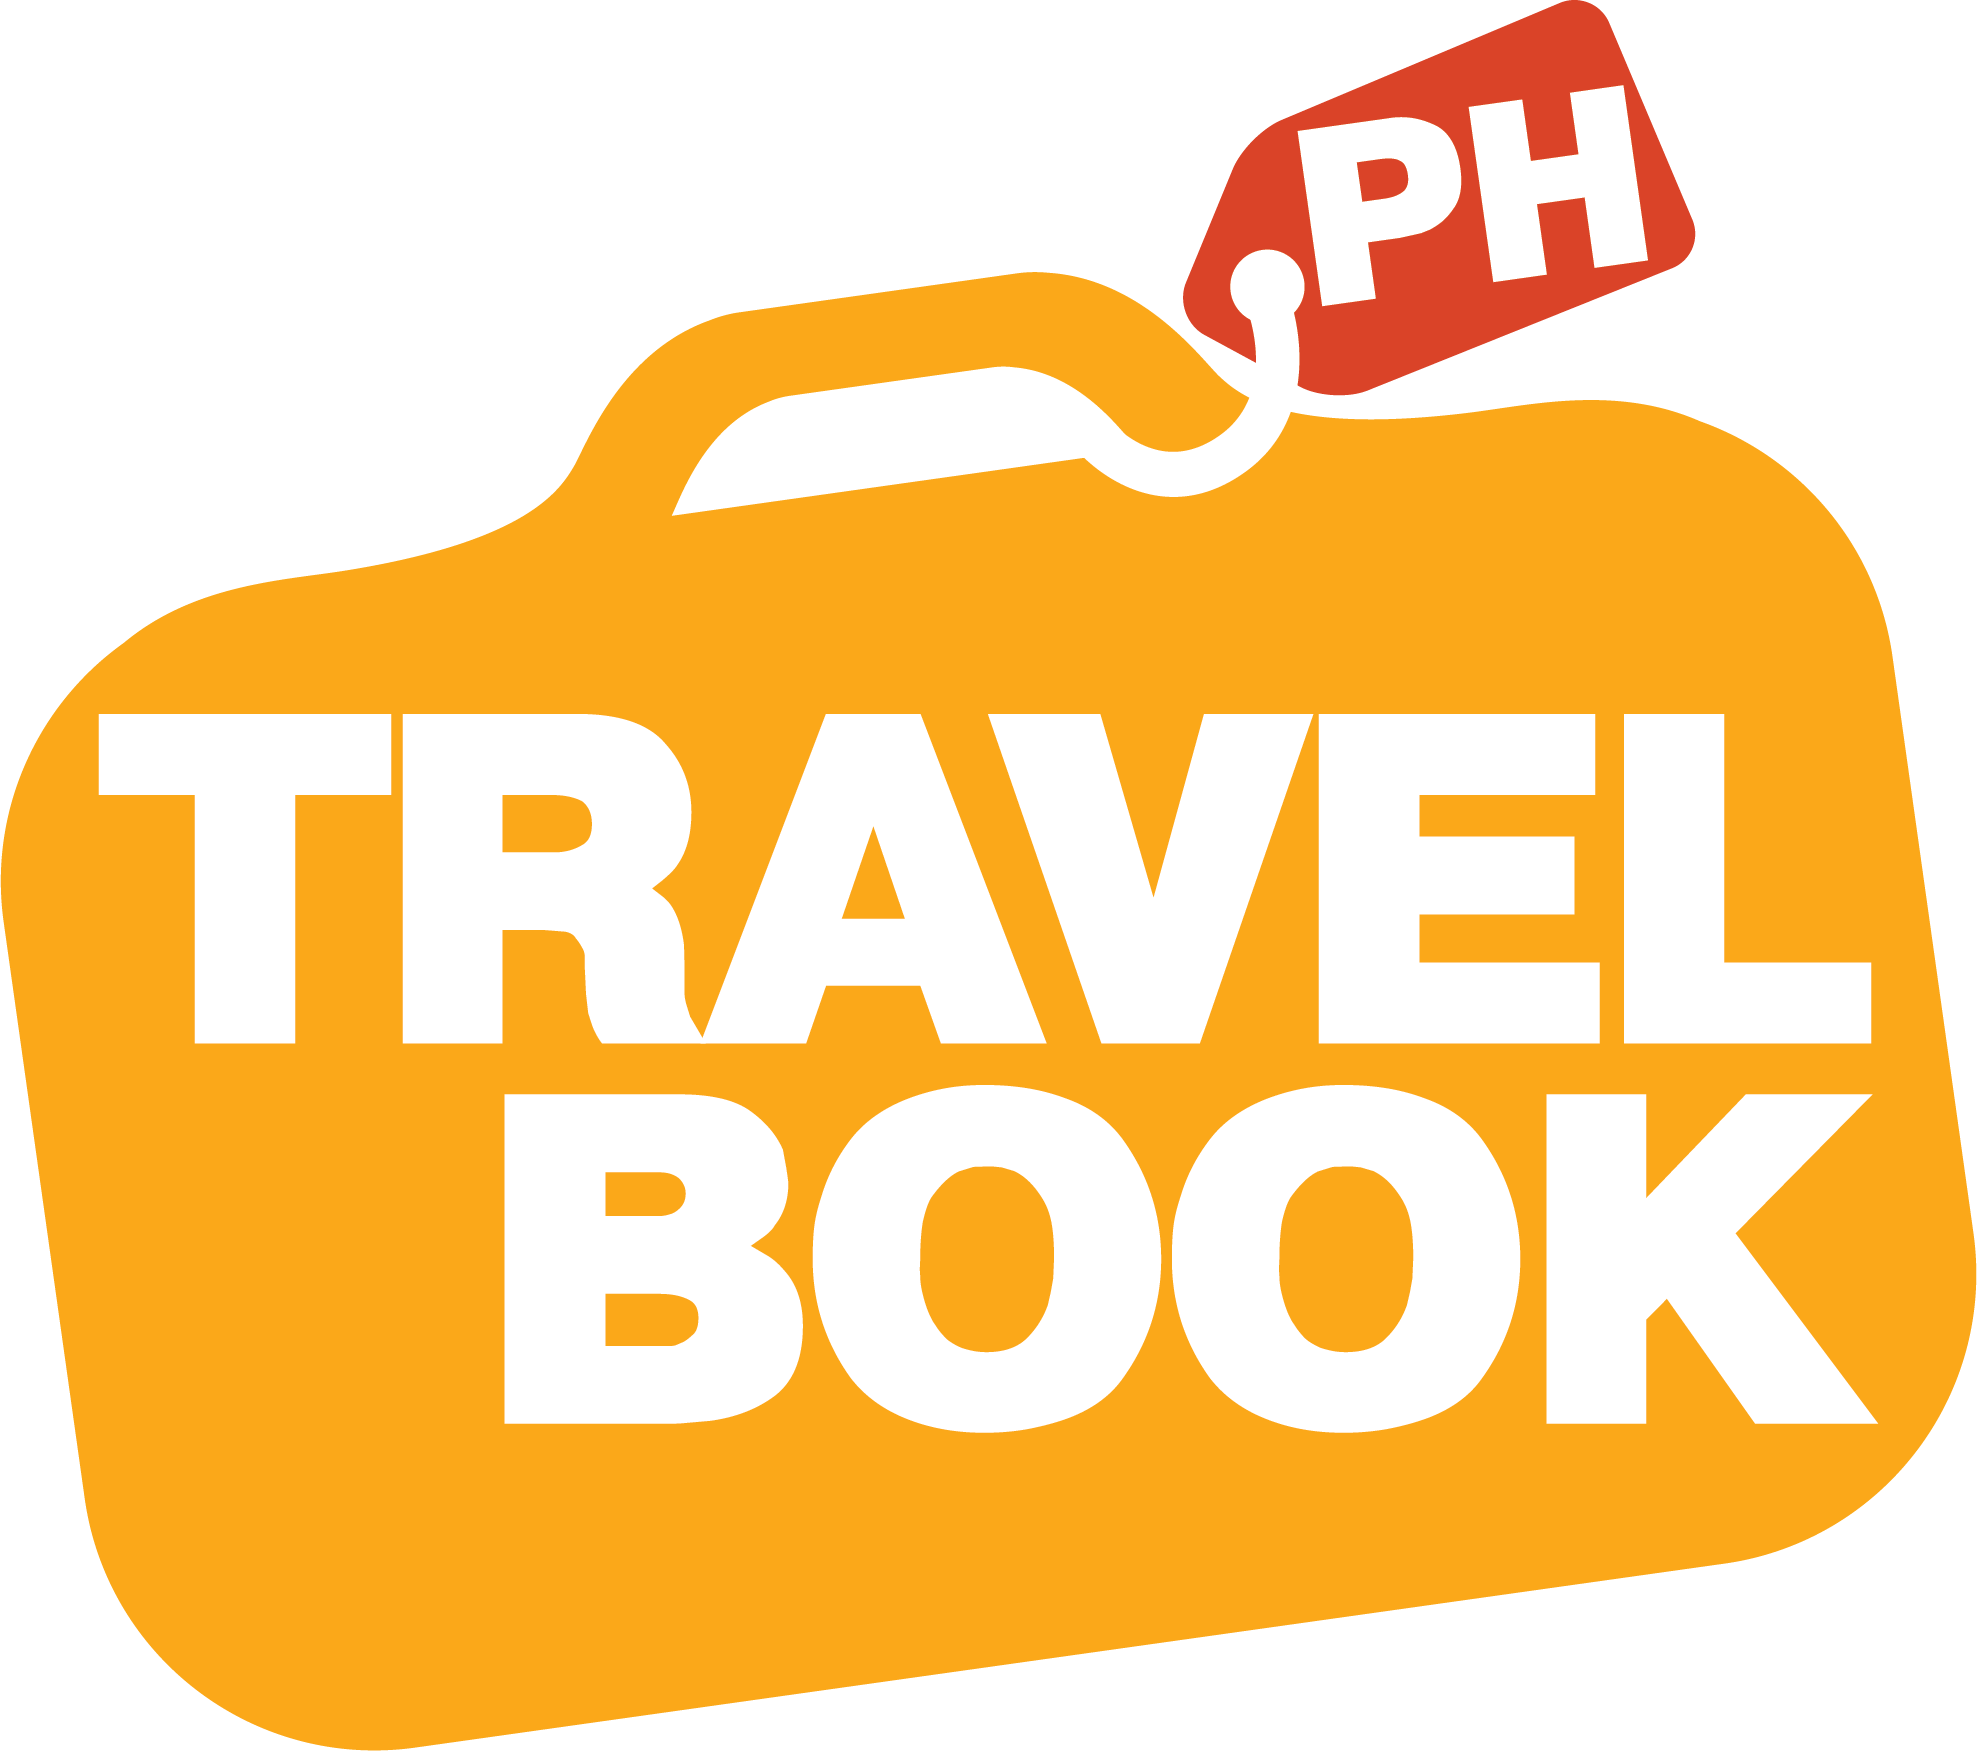 Travelbook.ph Promotions & Discounts